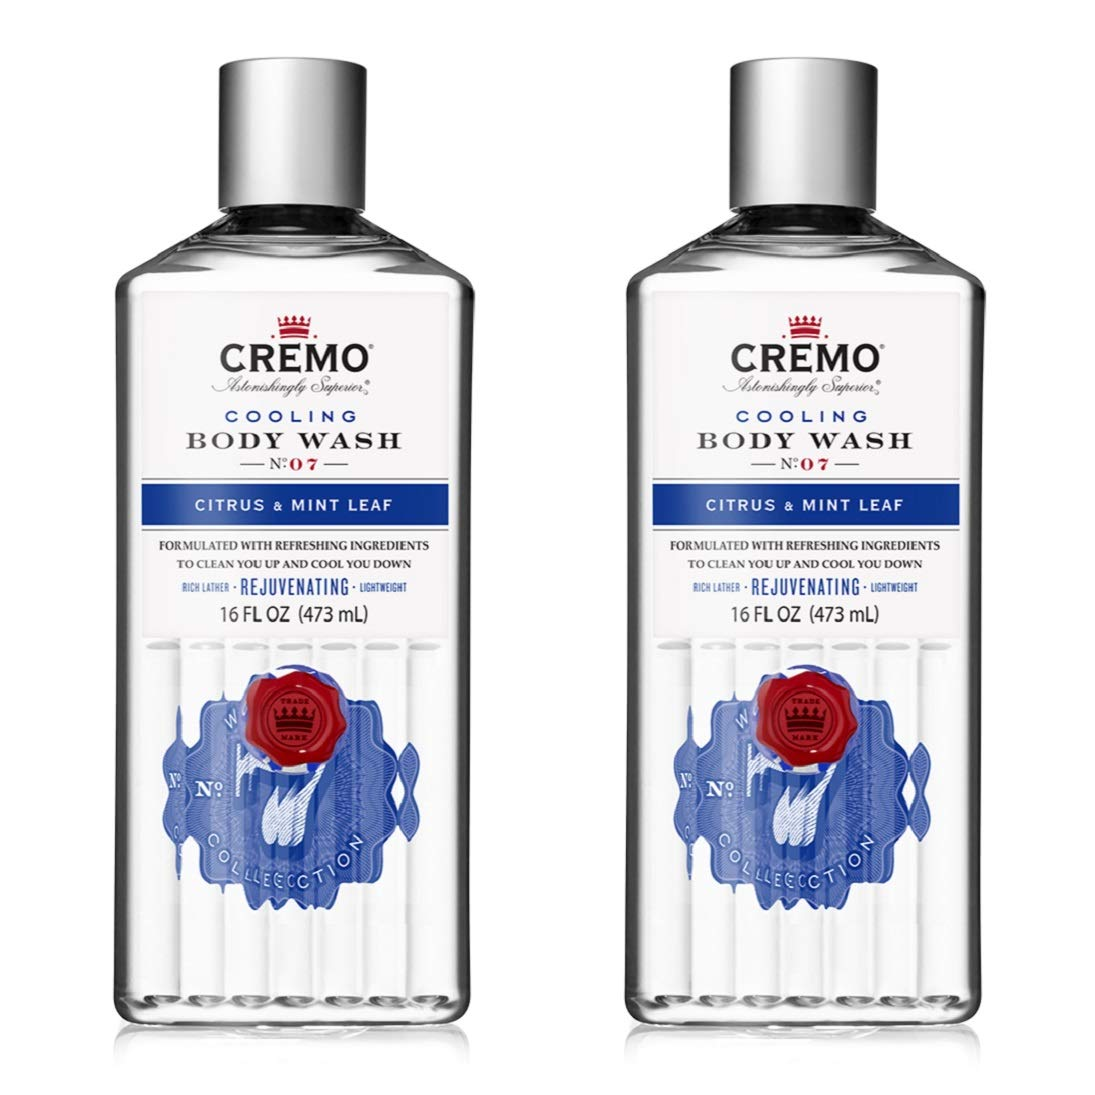 Cremo Cooling Citrus & Mint Leaf Body Wash, A Refreshing Scent with Notes of Fresh Mint, Citron, Cedar and Moss, 16 Oz (2-Pack)